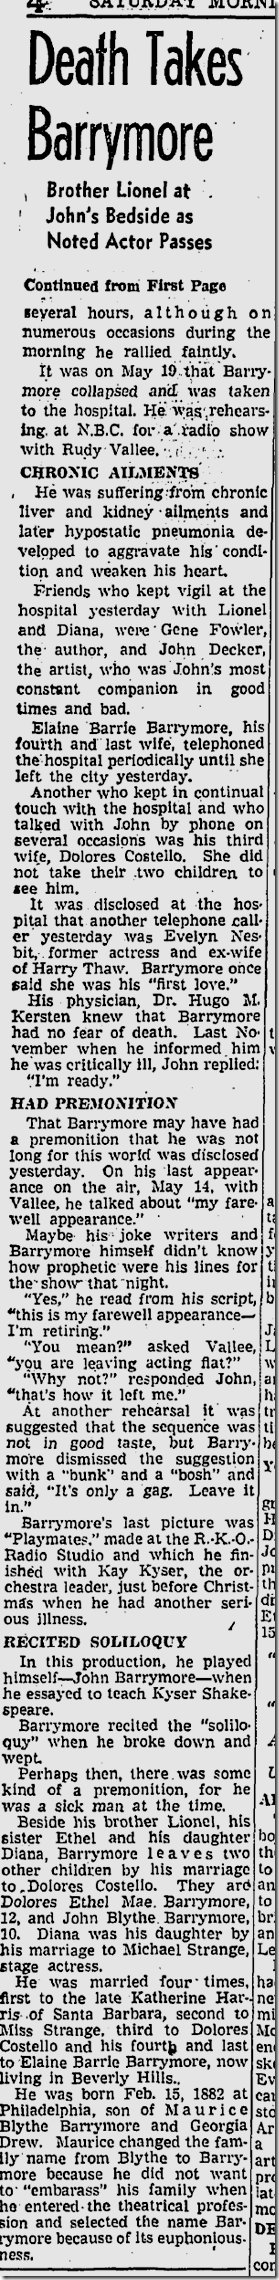 May 30, 1942, Barrymore Dies